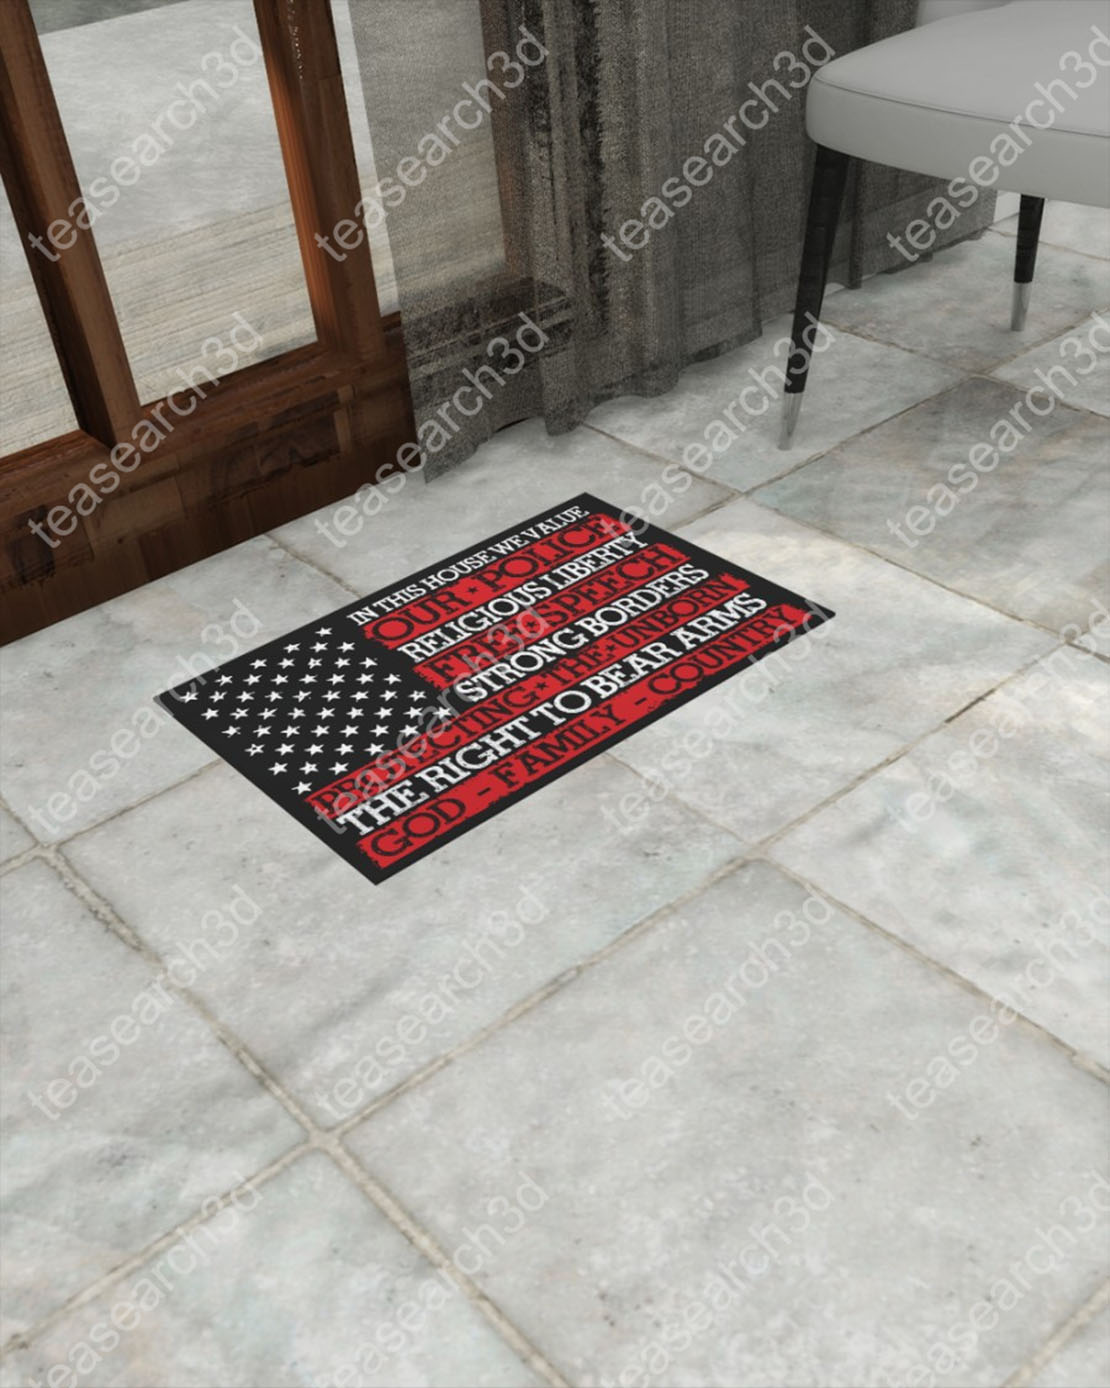 In this house we value our police religious liberty free speech strong borders doormat